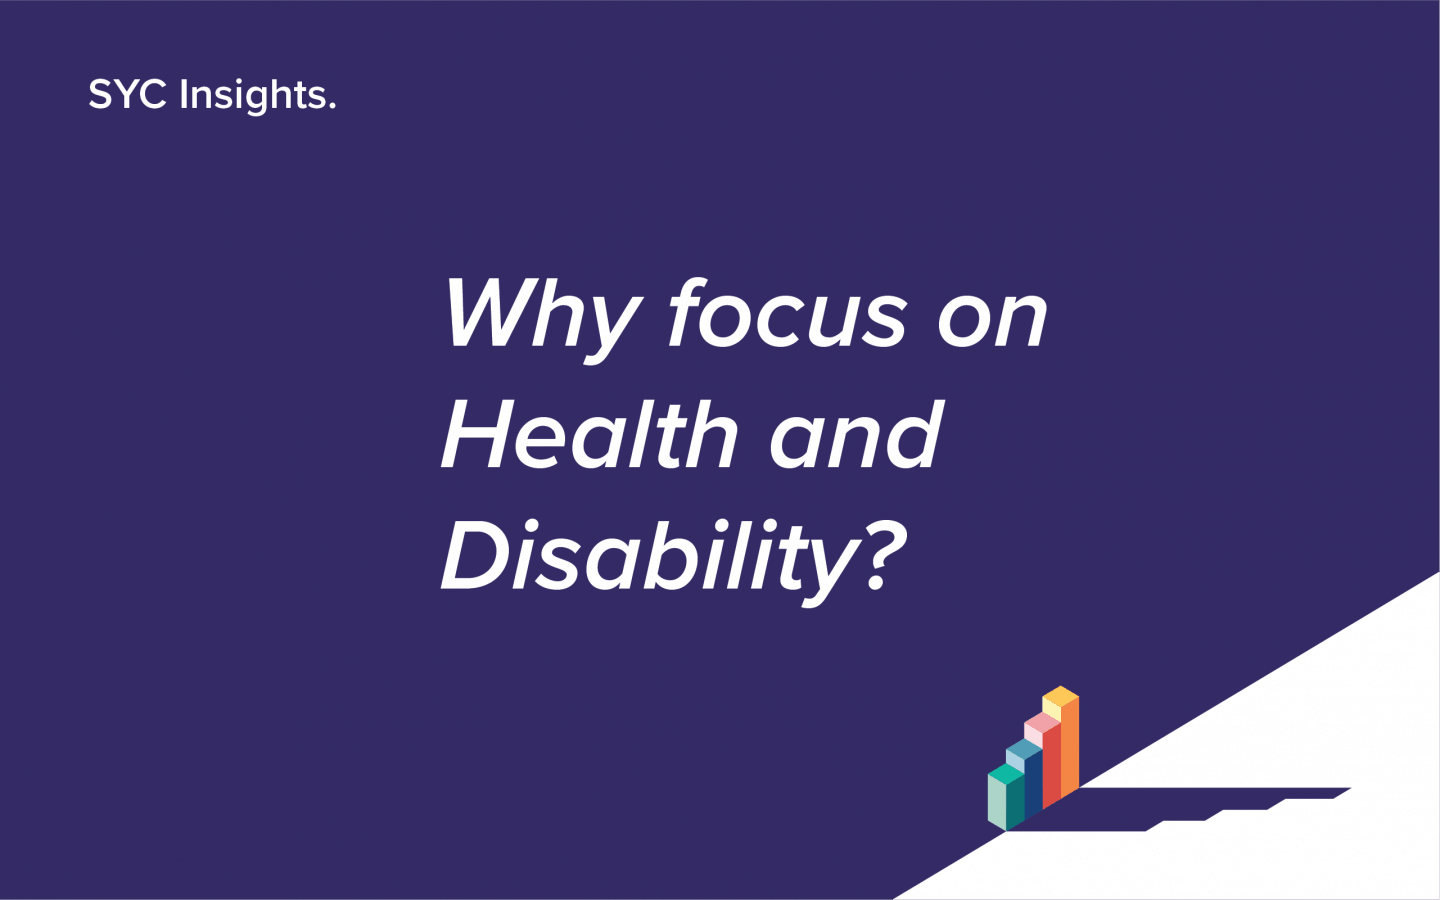 Why focus on Health and Disability